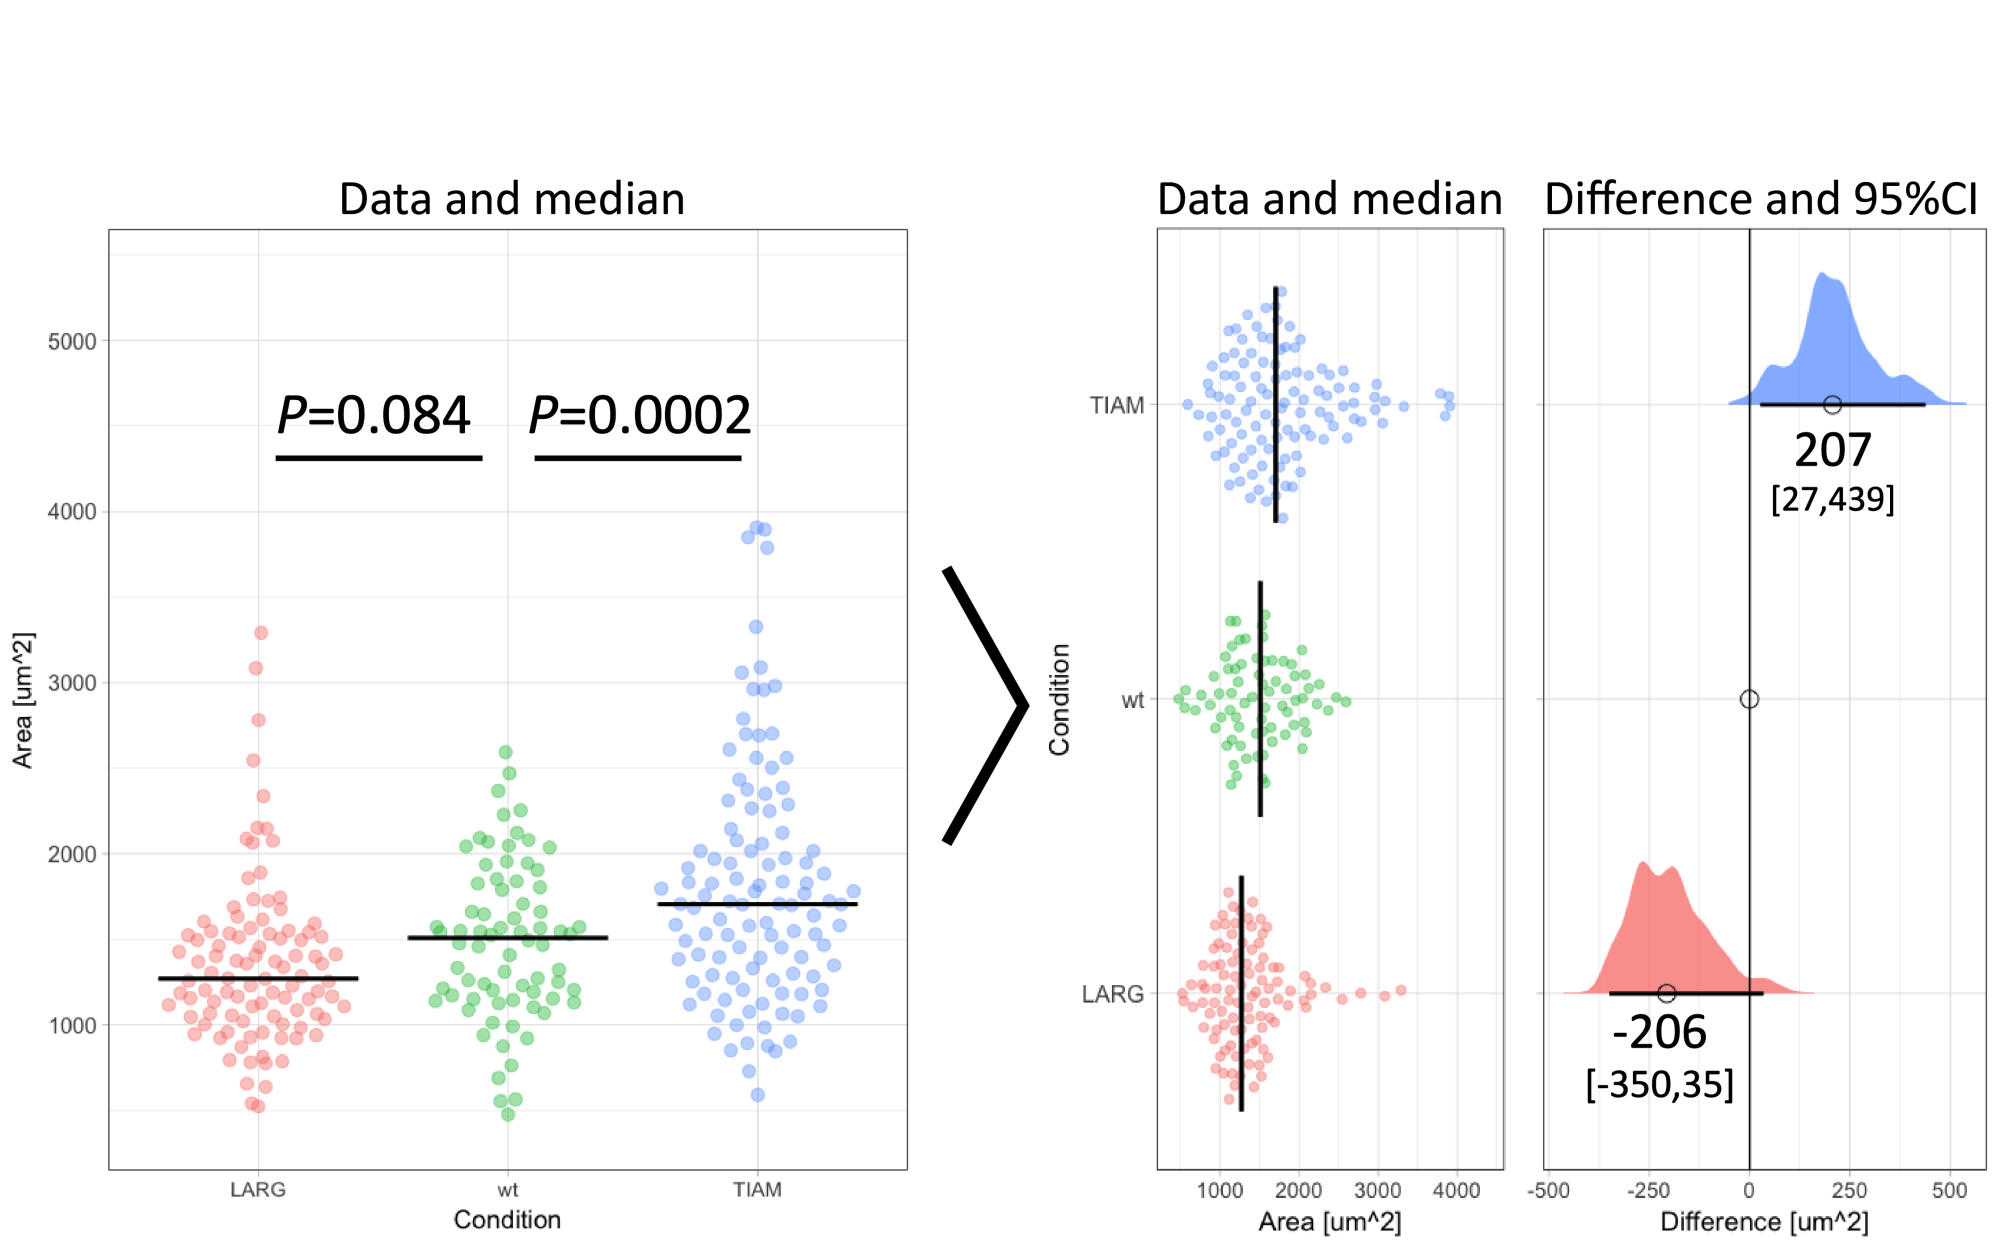 hight resolution of figure 1 transformation of an ordinary graph with p values into a visualization of the data and the difference between median values as the effect size